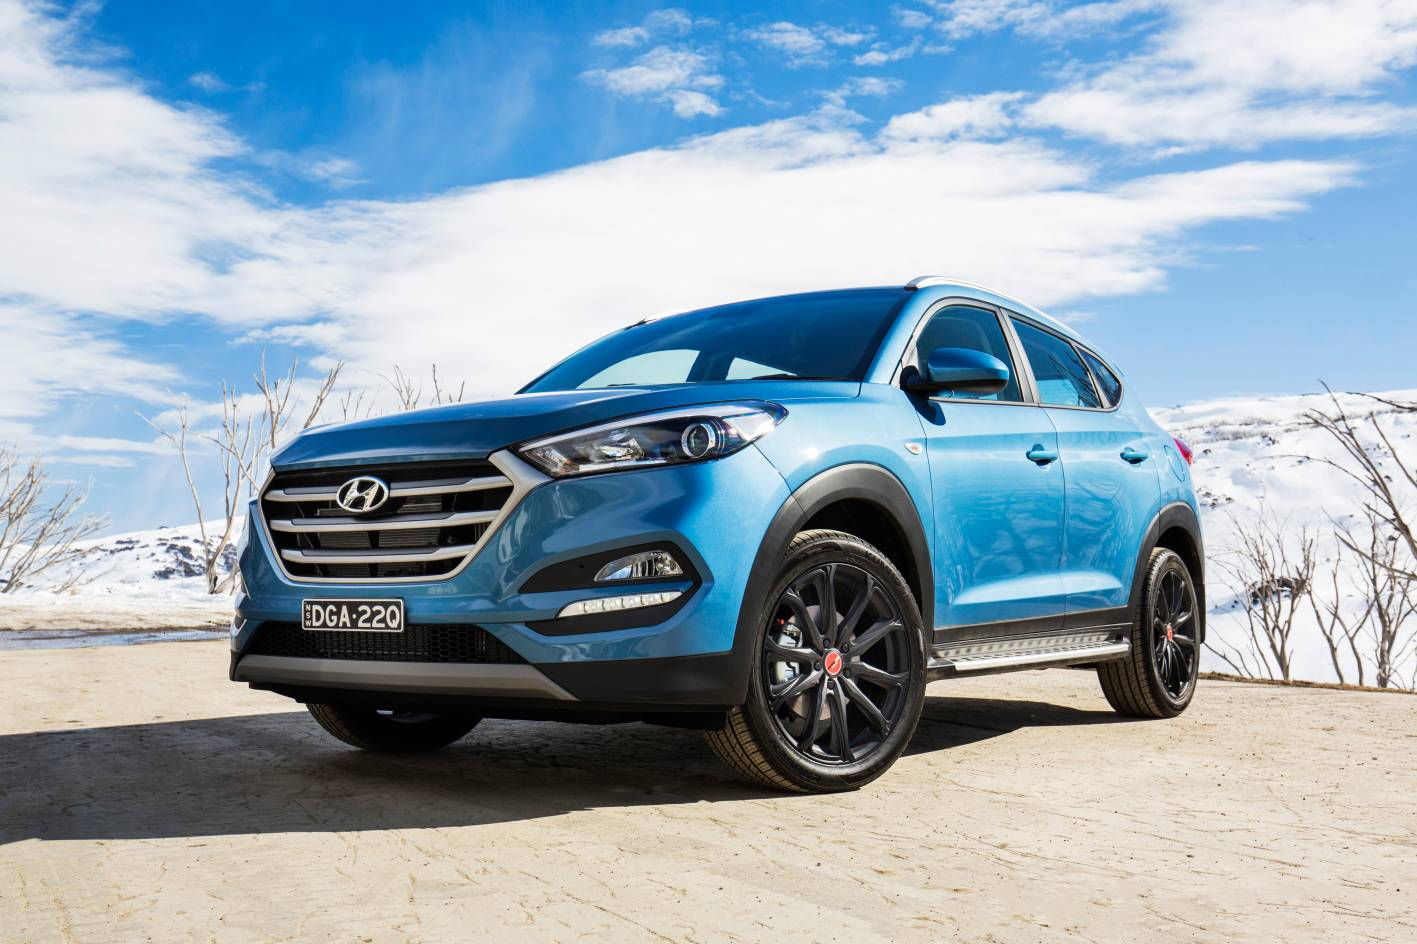 hyundai introduces 30 special edition tucson and santa fe models. Black Bedroom Furniture Sets. Home Design Ideas